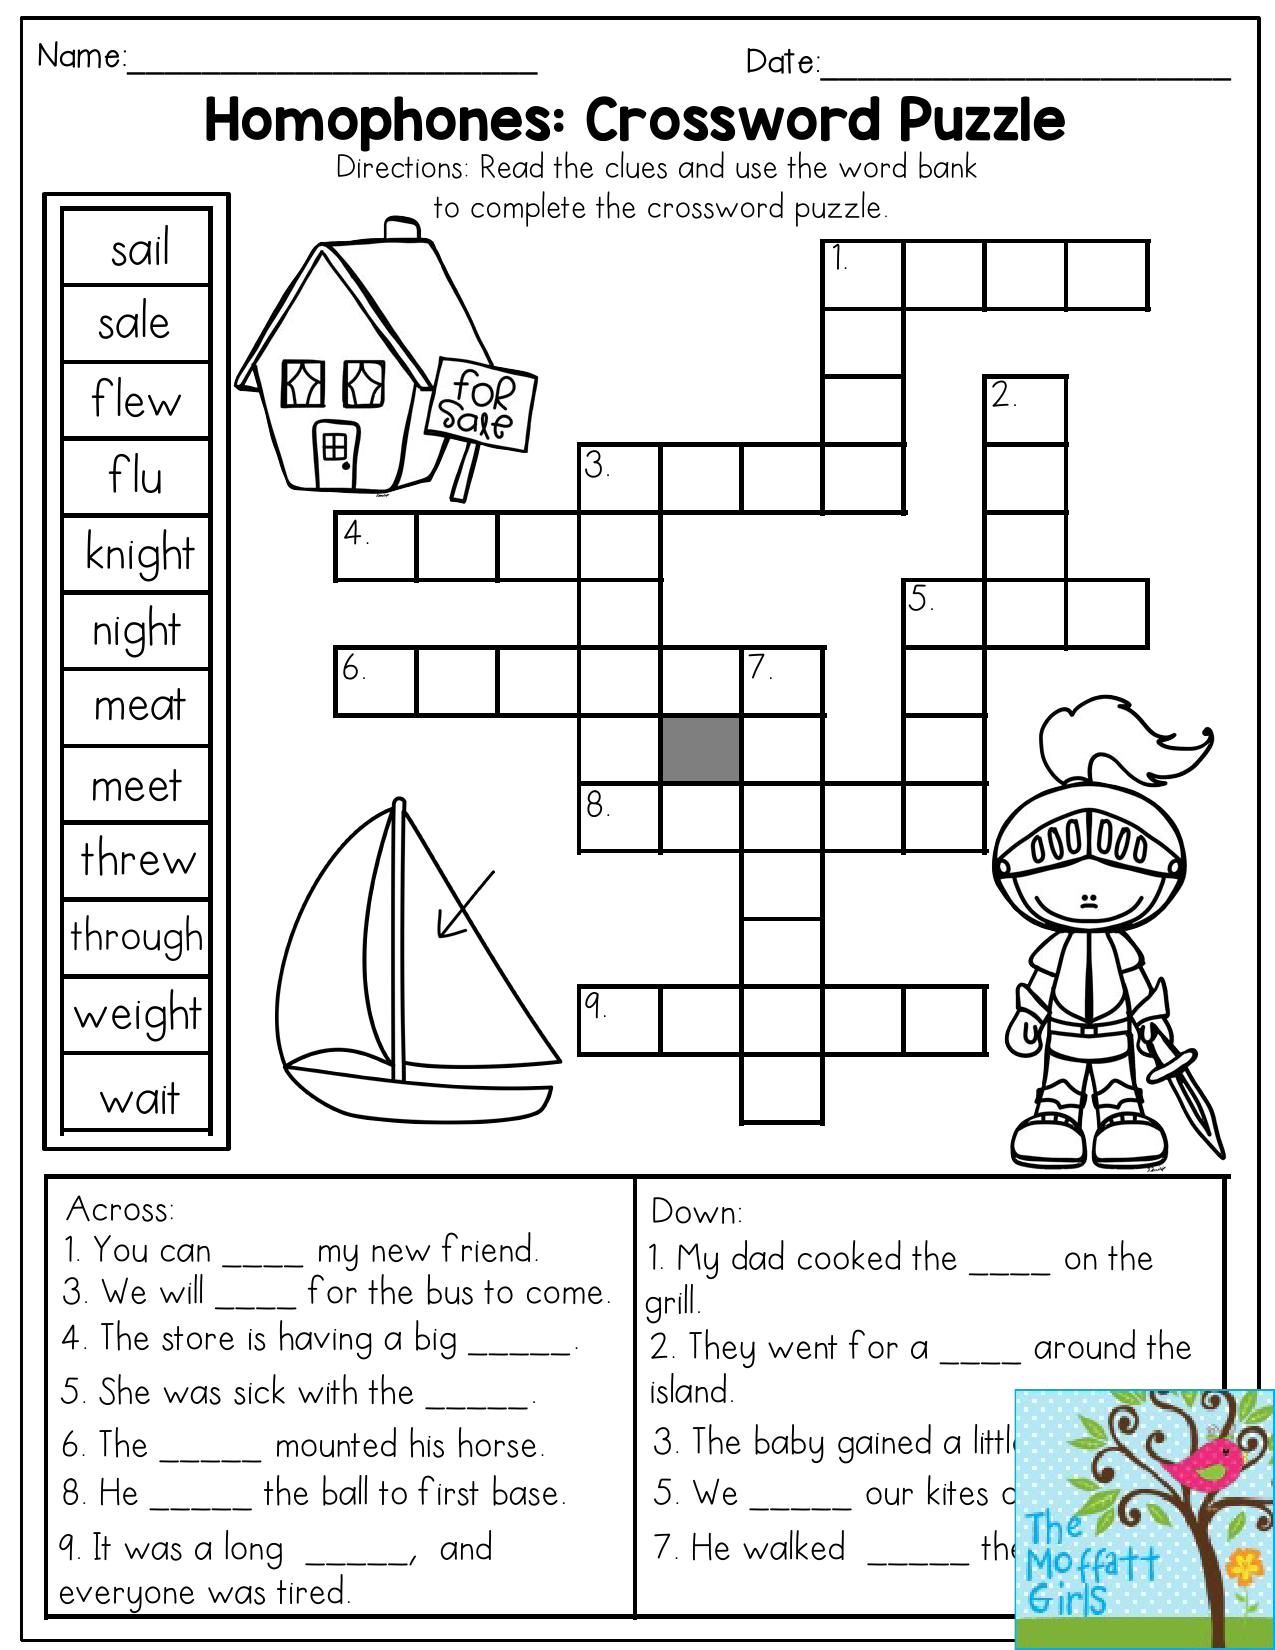 Homophones: Crossword Puzzle- Read The Clues And Use The Word Bank - Printable Compound Word Crossword Puzzle